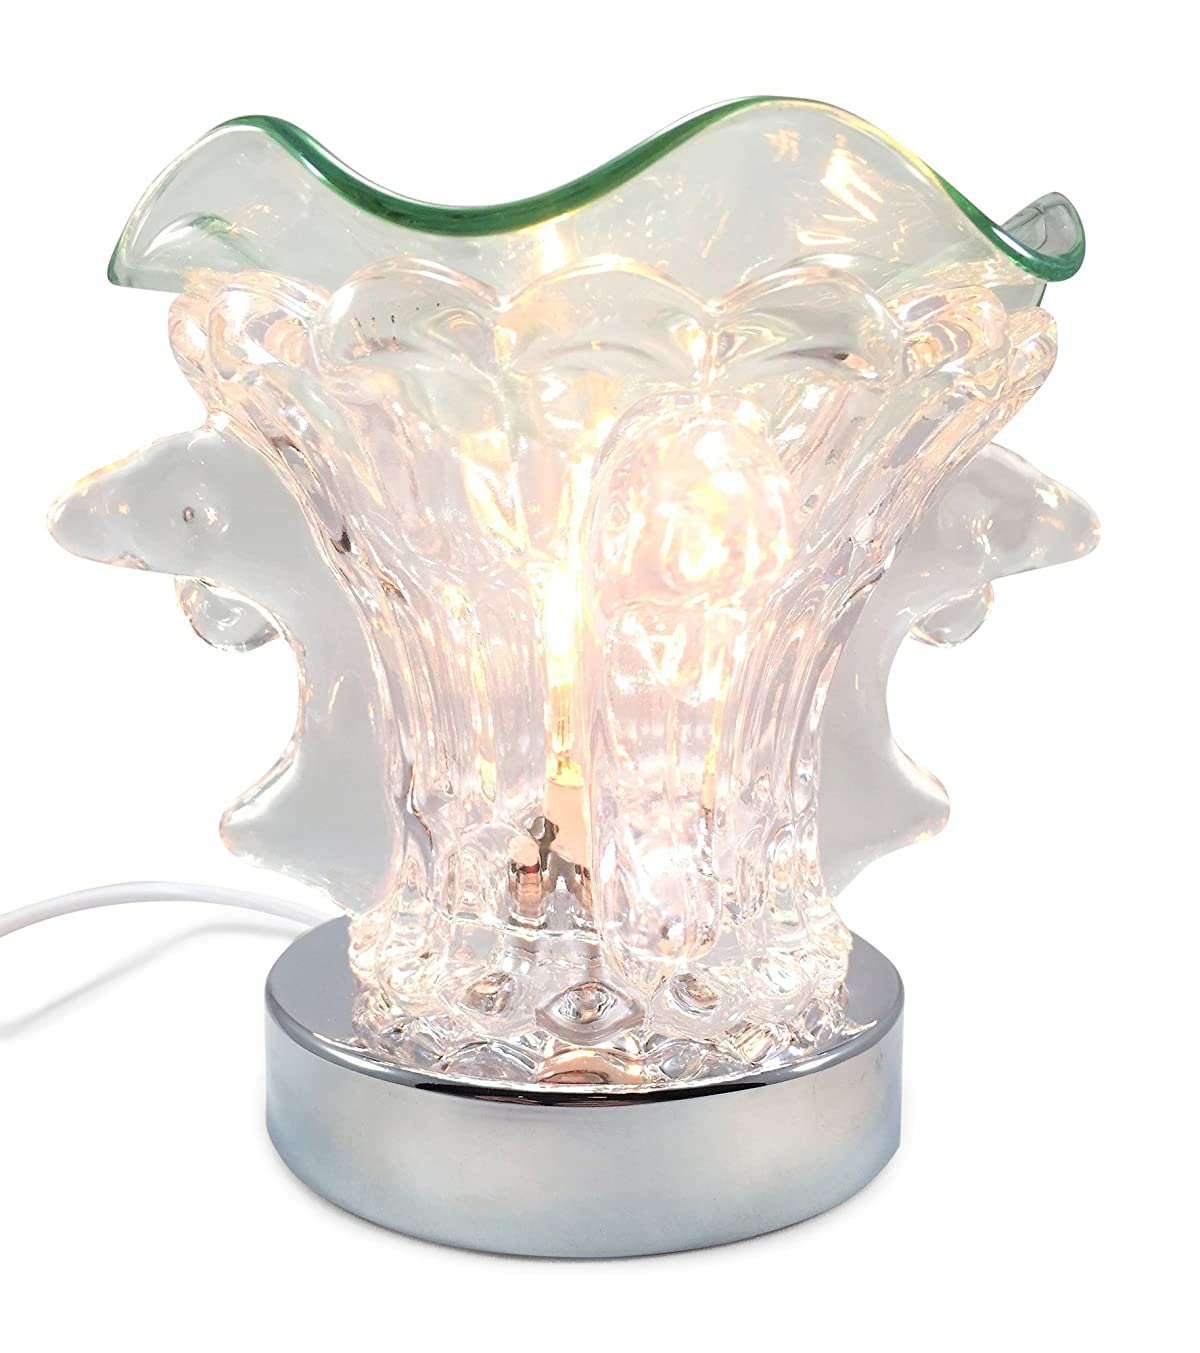 Dolphin Fountain, Clear Glass Electric Touch-controlled Fragrance Lamp with Free Replacement Halogen Bulb